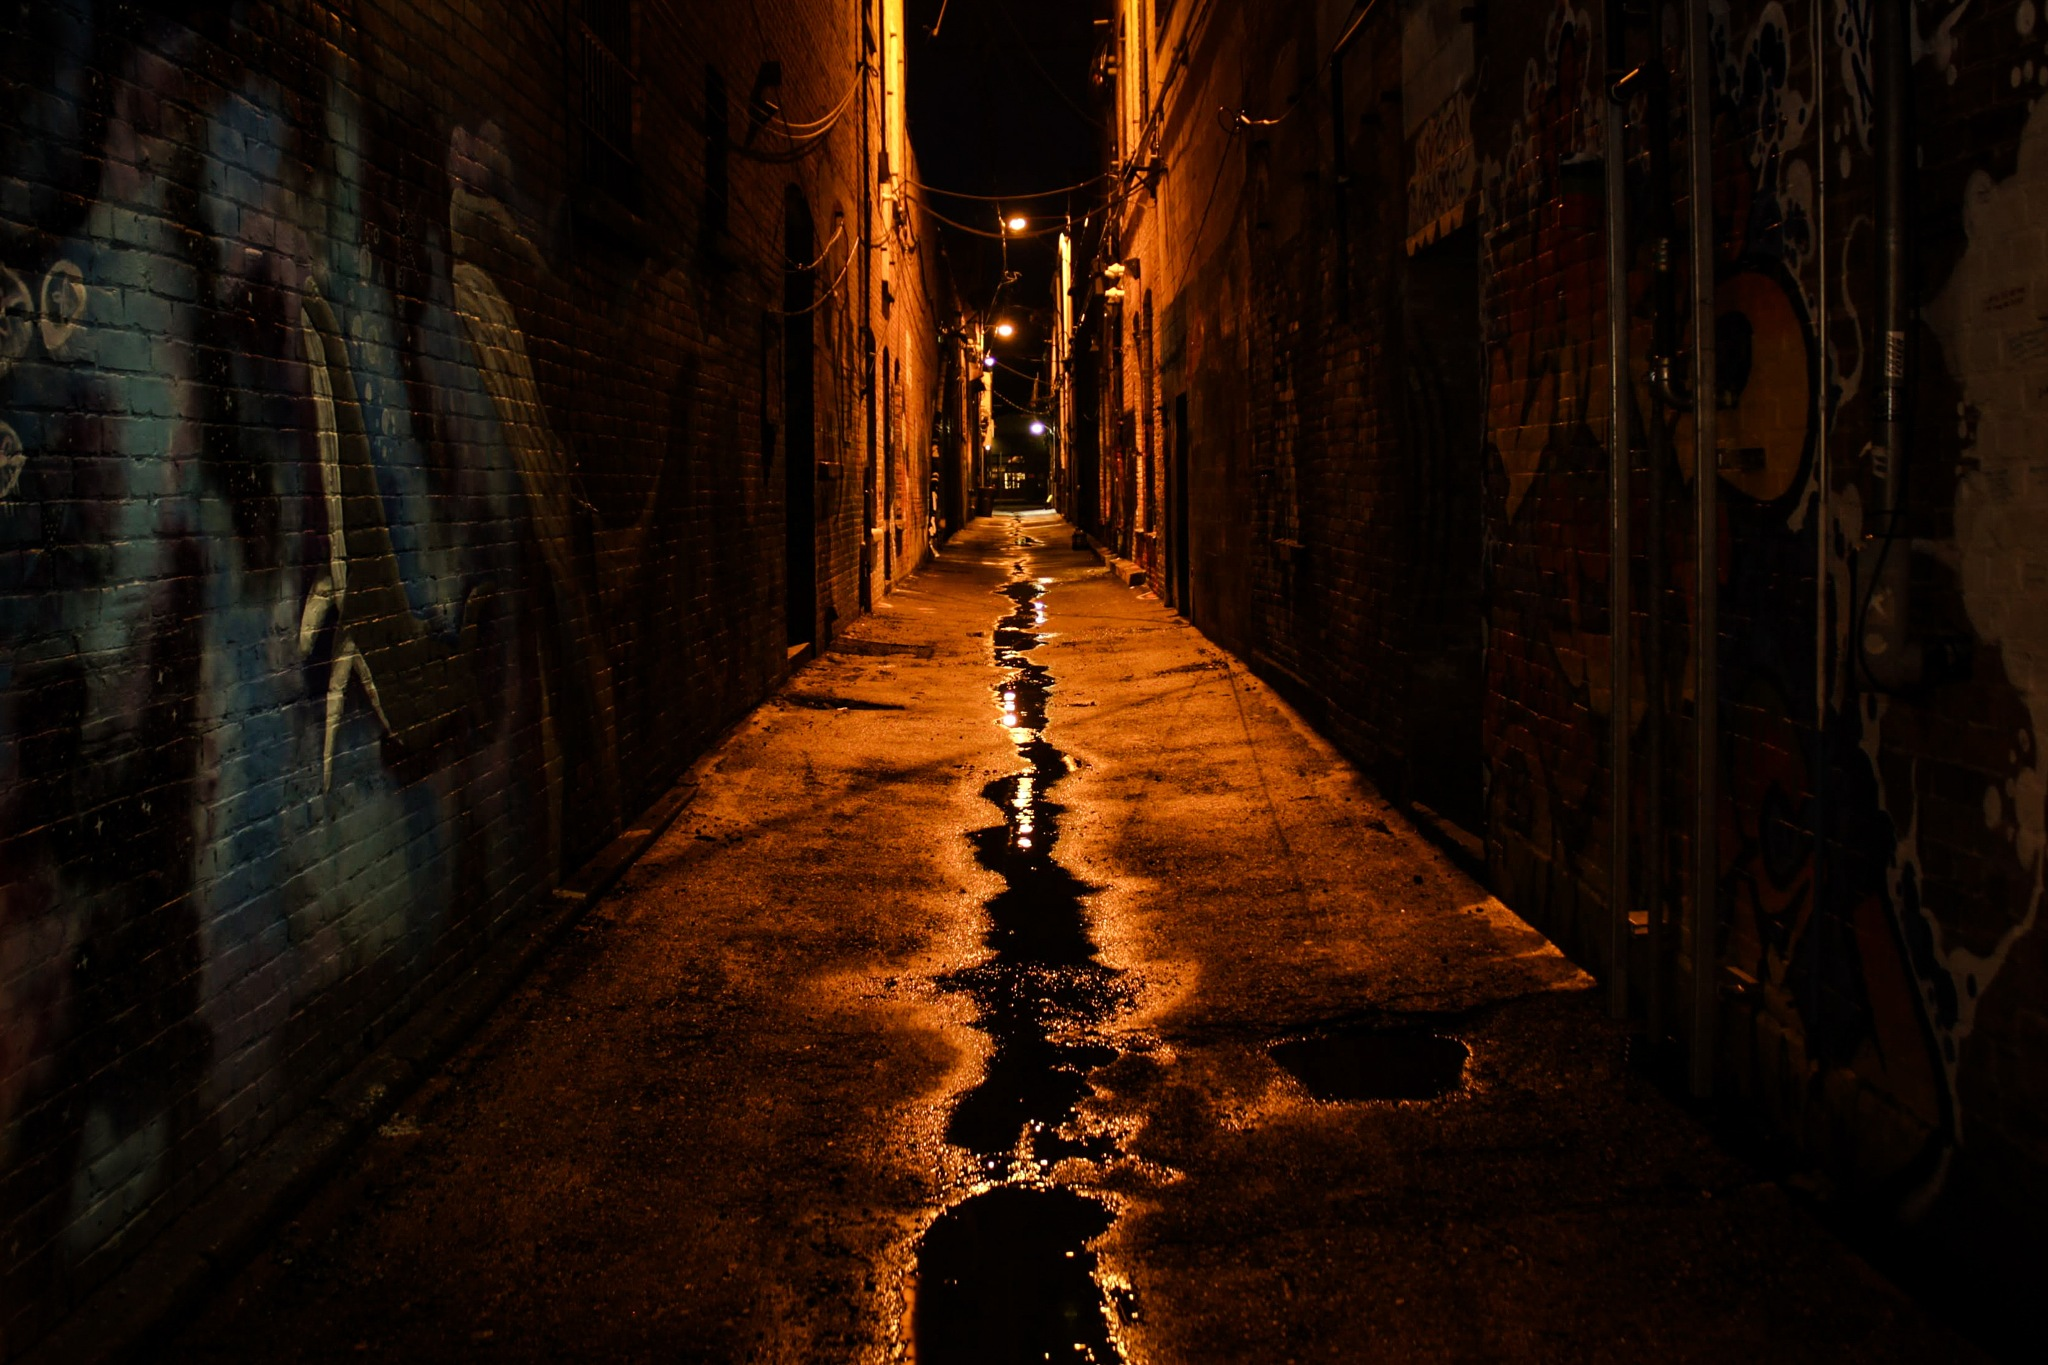 Art Alley by Griffin Stearns